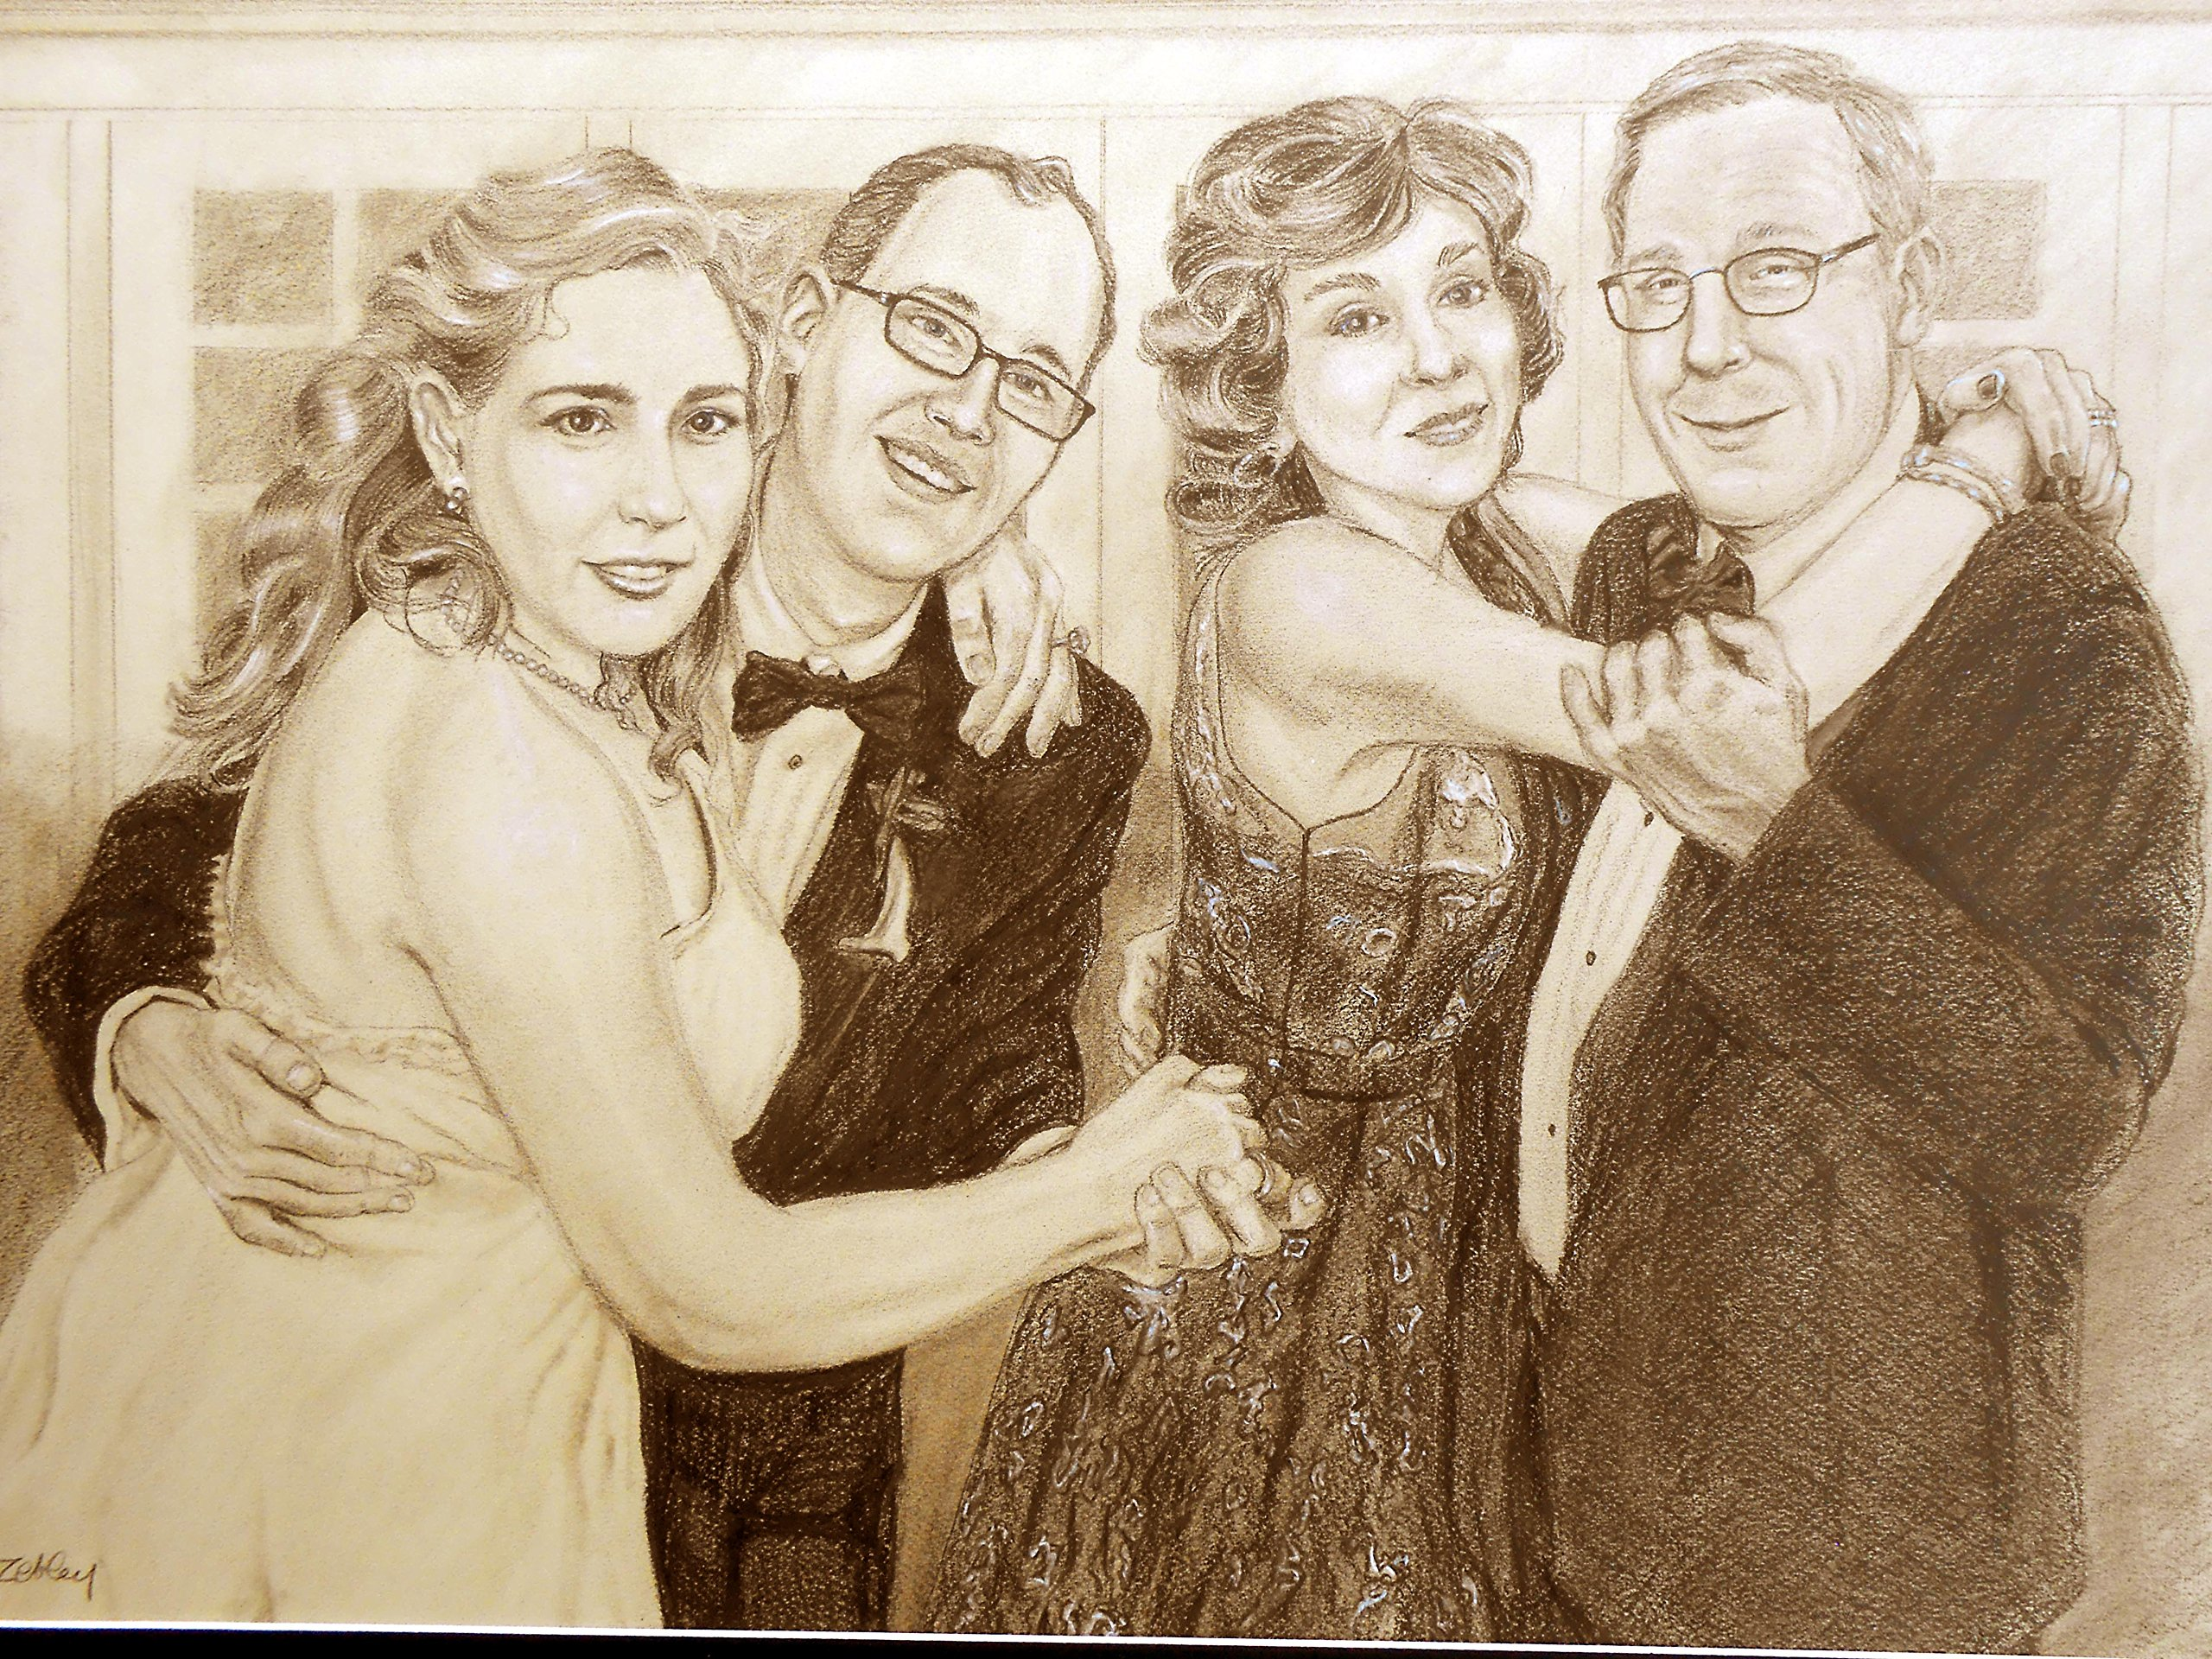 Custom Portrait Drawing, Wedding Reception Celebration, of Bride and Groom and Parents, Anniversary Couple Gift by Custom Portrait Paintings